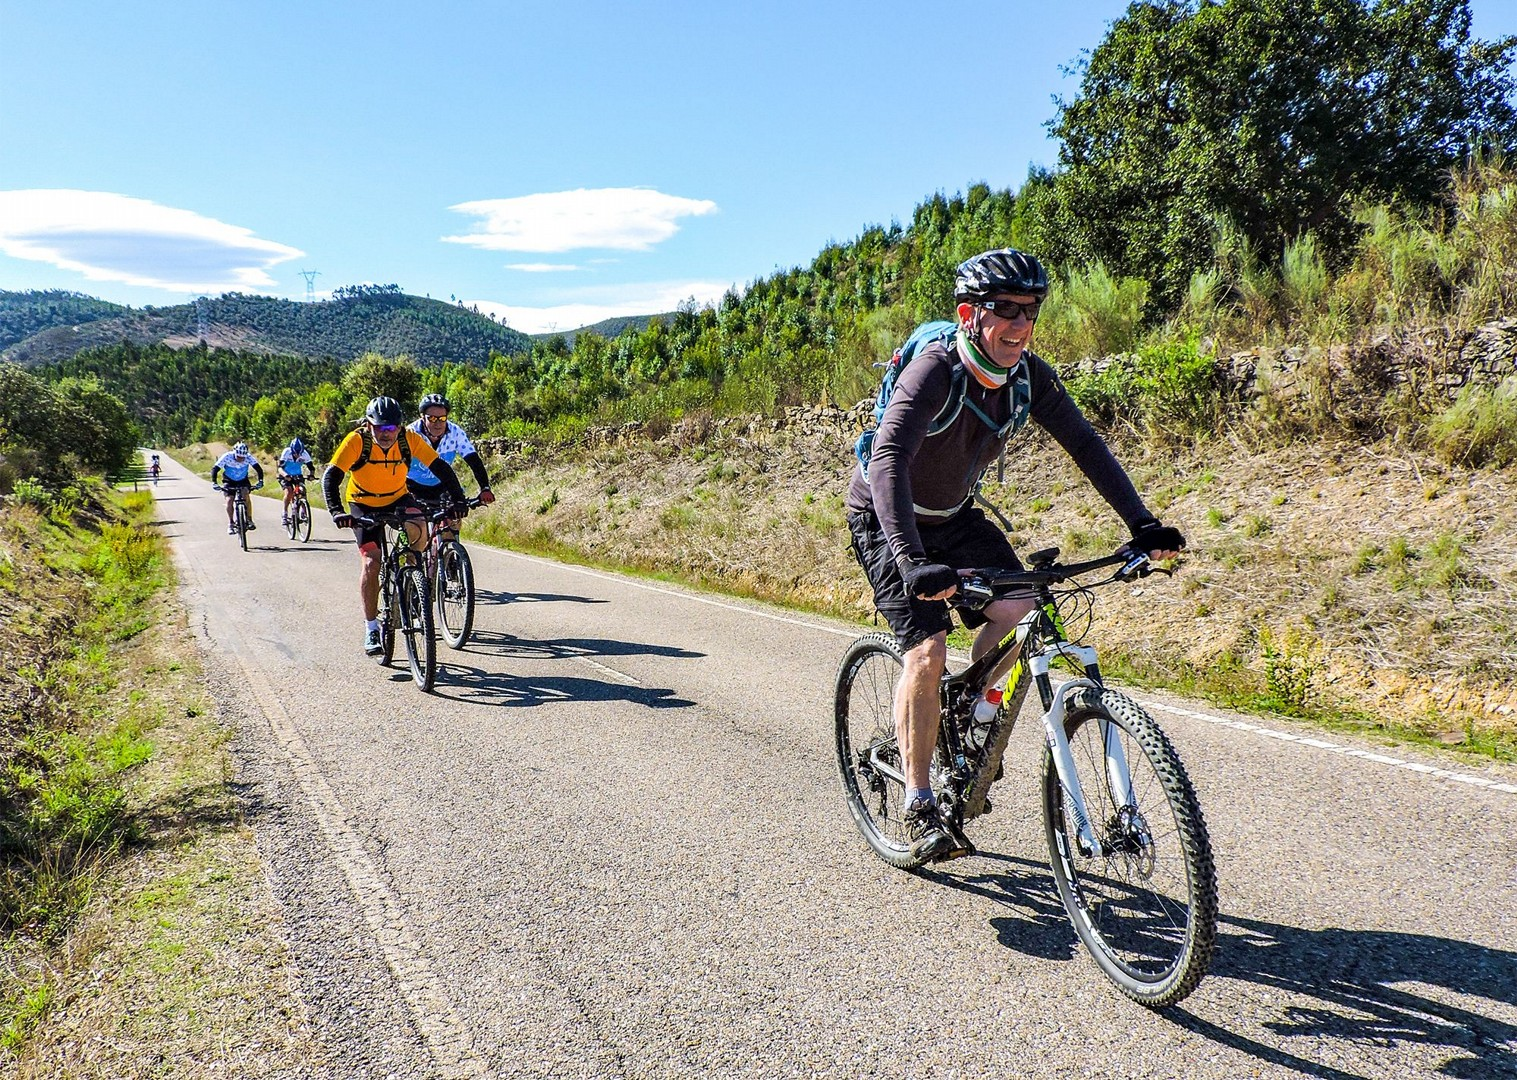 cycling-holiday-saddle-skedaddle-portugal-mountain-bike-tours.jpg - Portugal - Roman Trails - Guided Mountain Bike Holiday - Mountain Biking